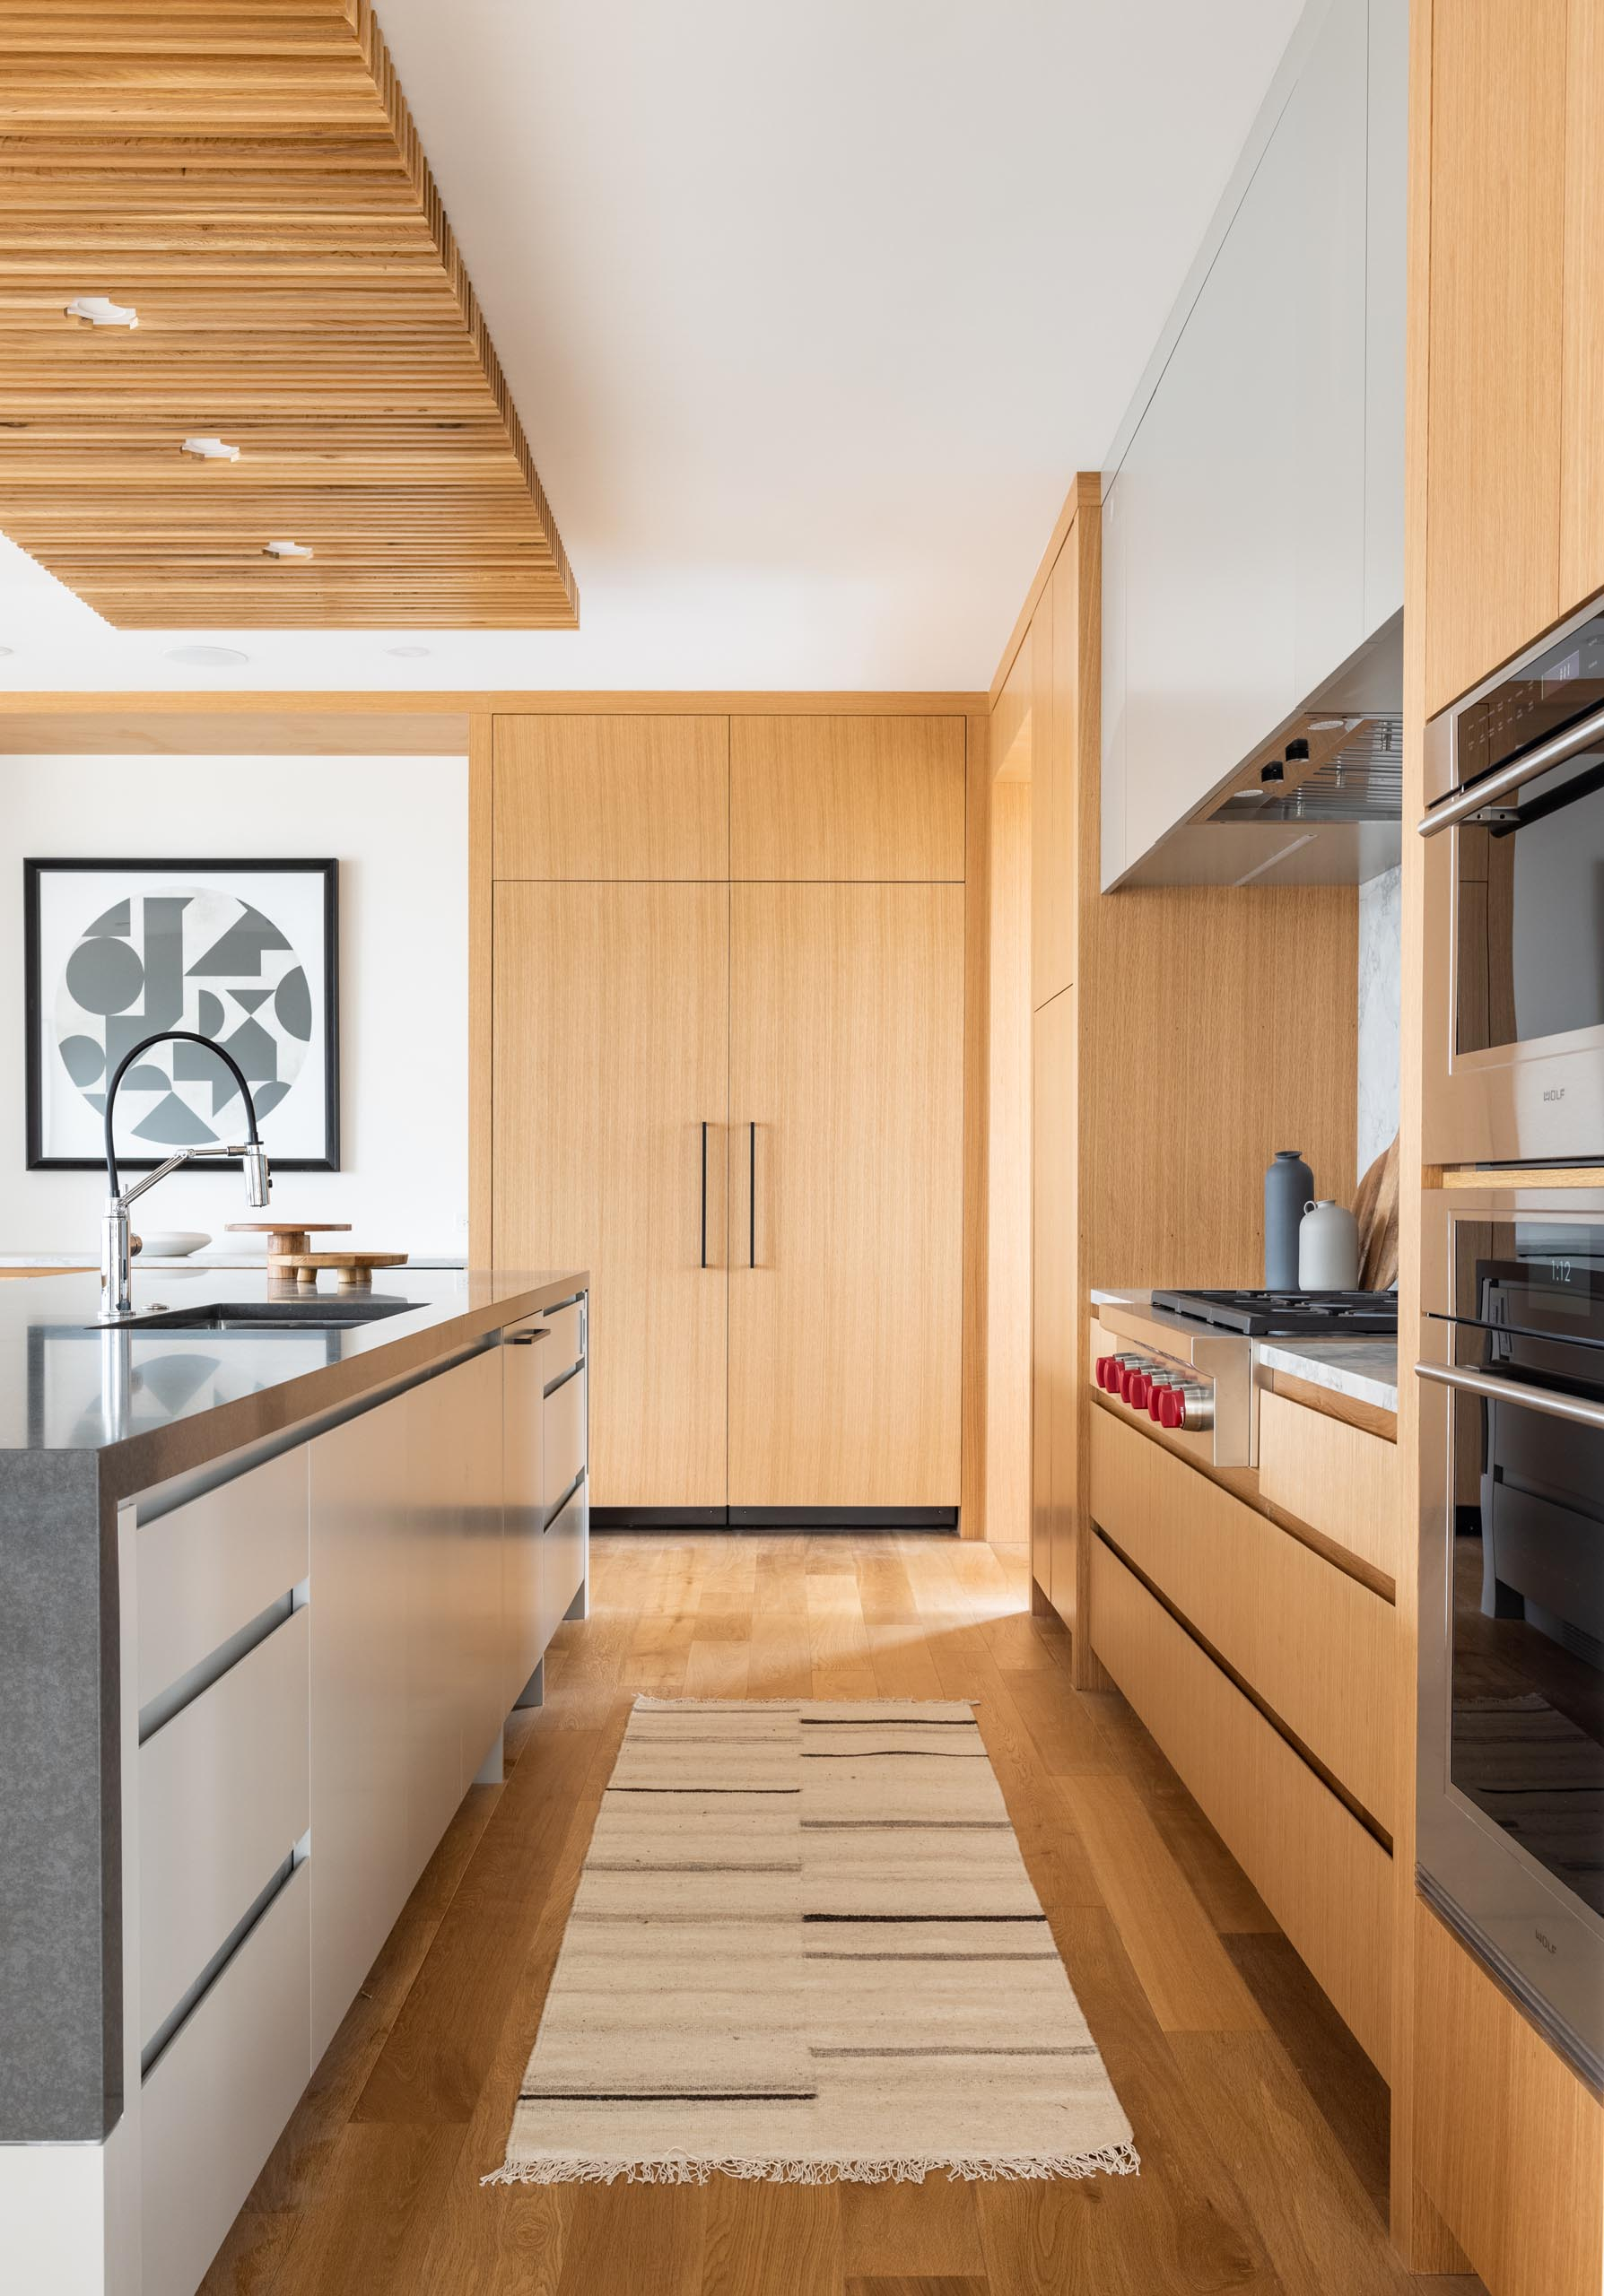 This modern kitchen includes a large island with a wood ceiling accent and light wood cabinets.